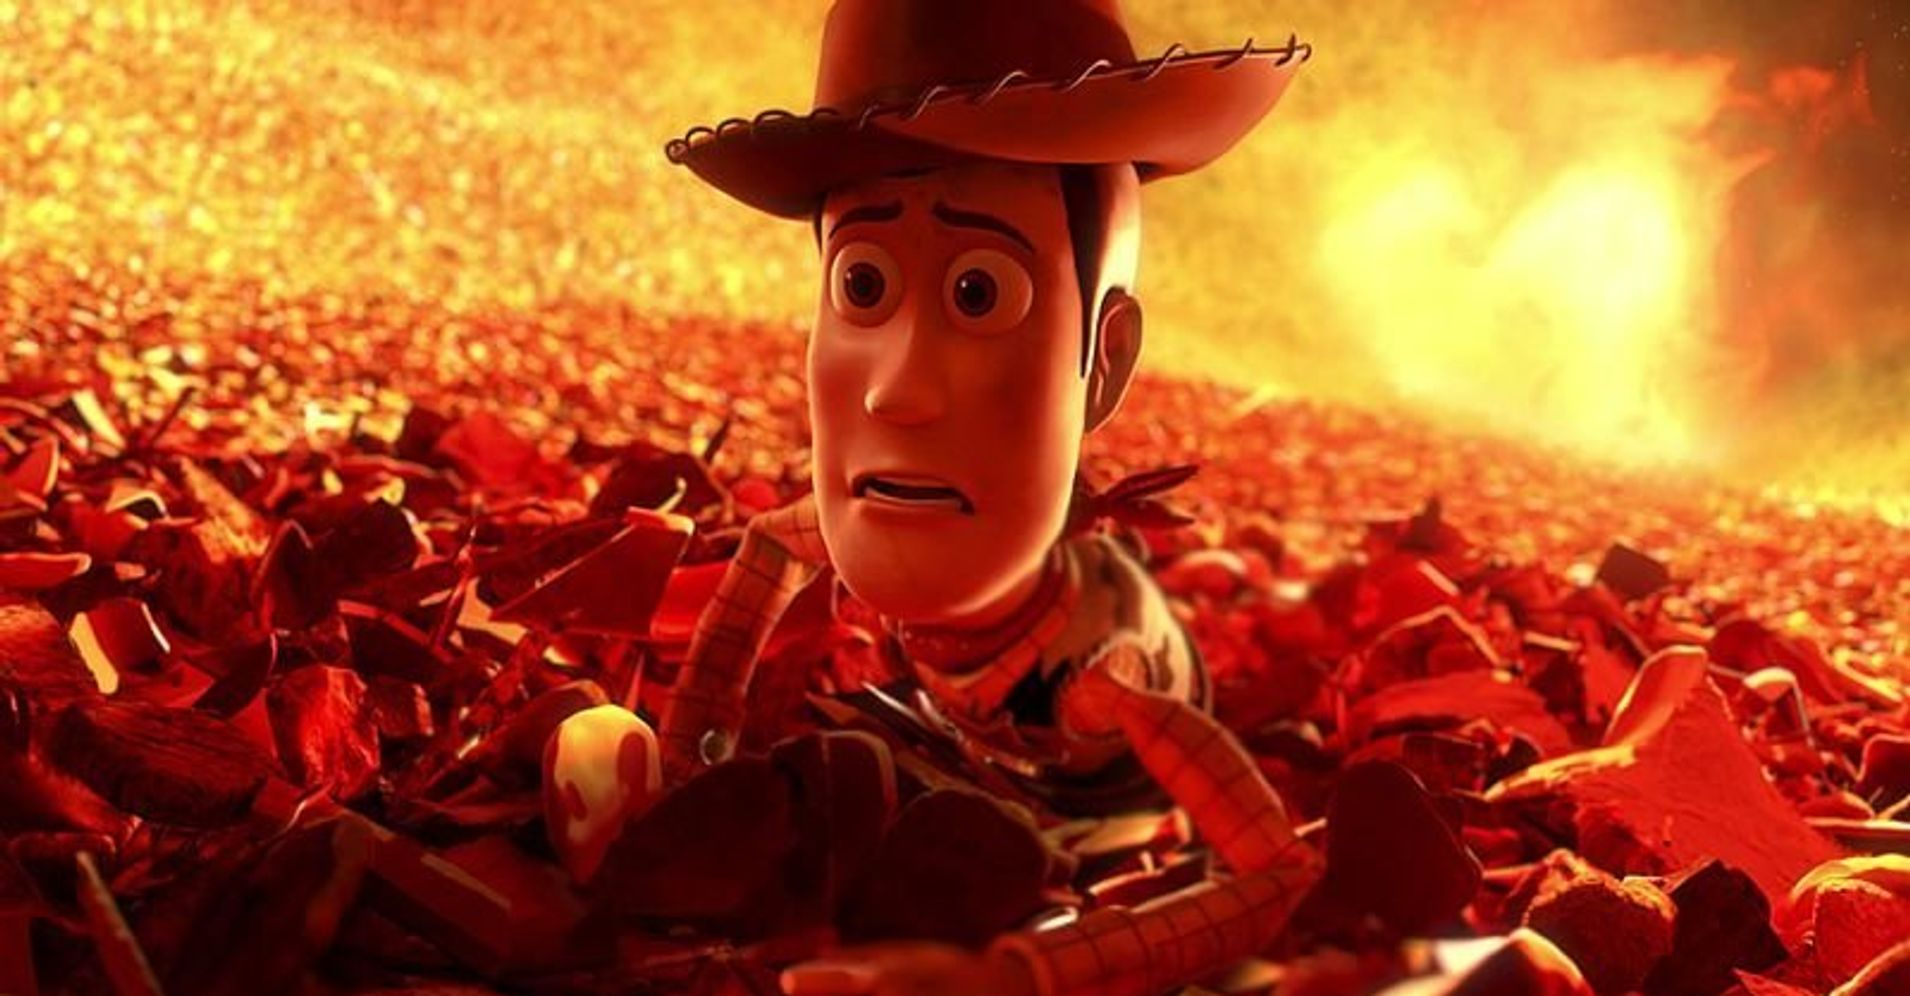 there was an even darker version of toy story 3 huffpost